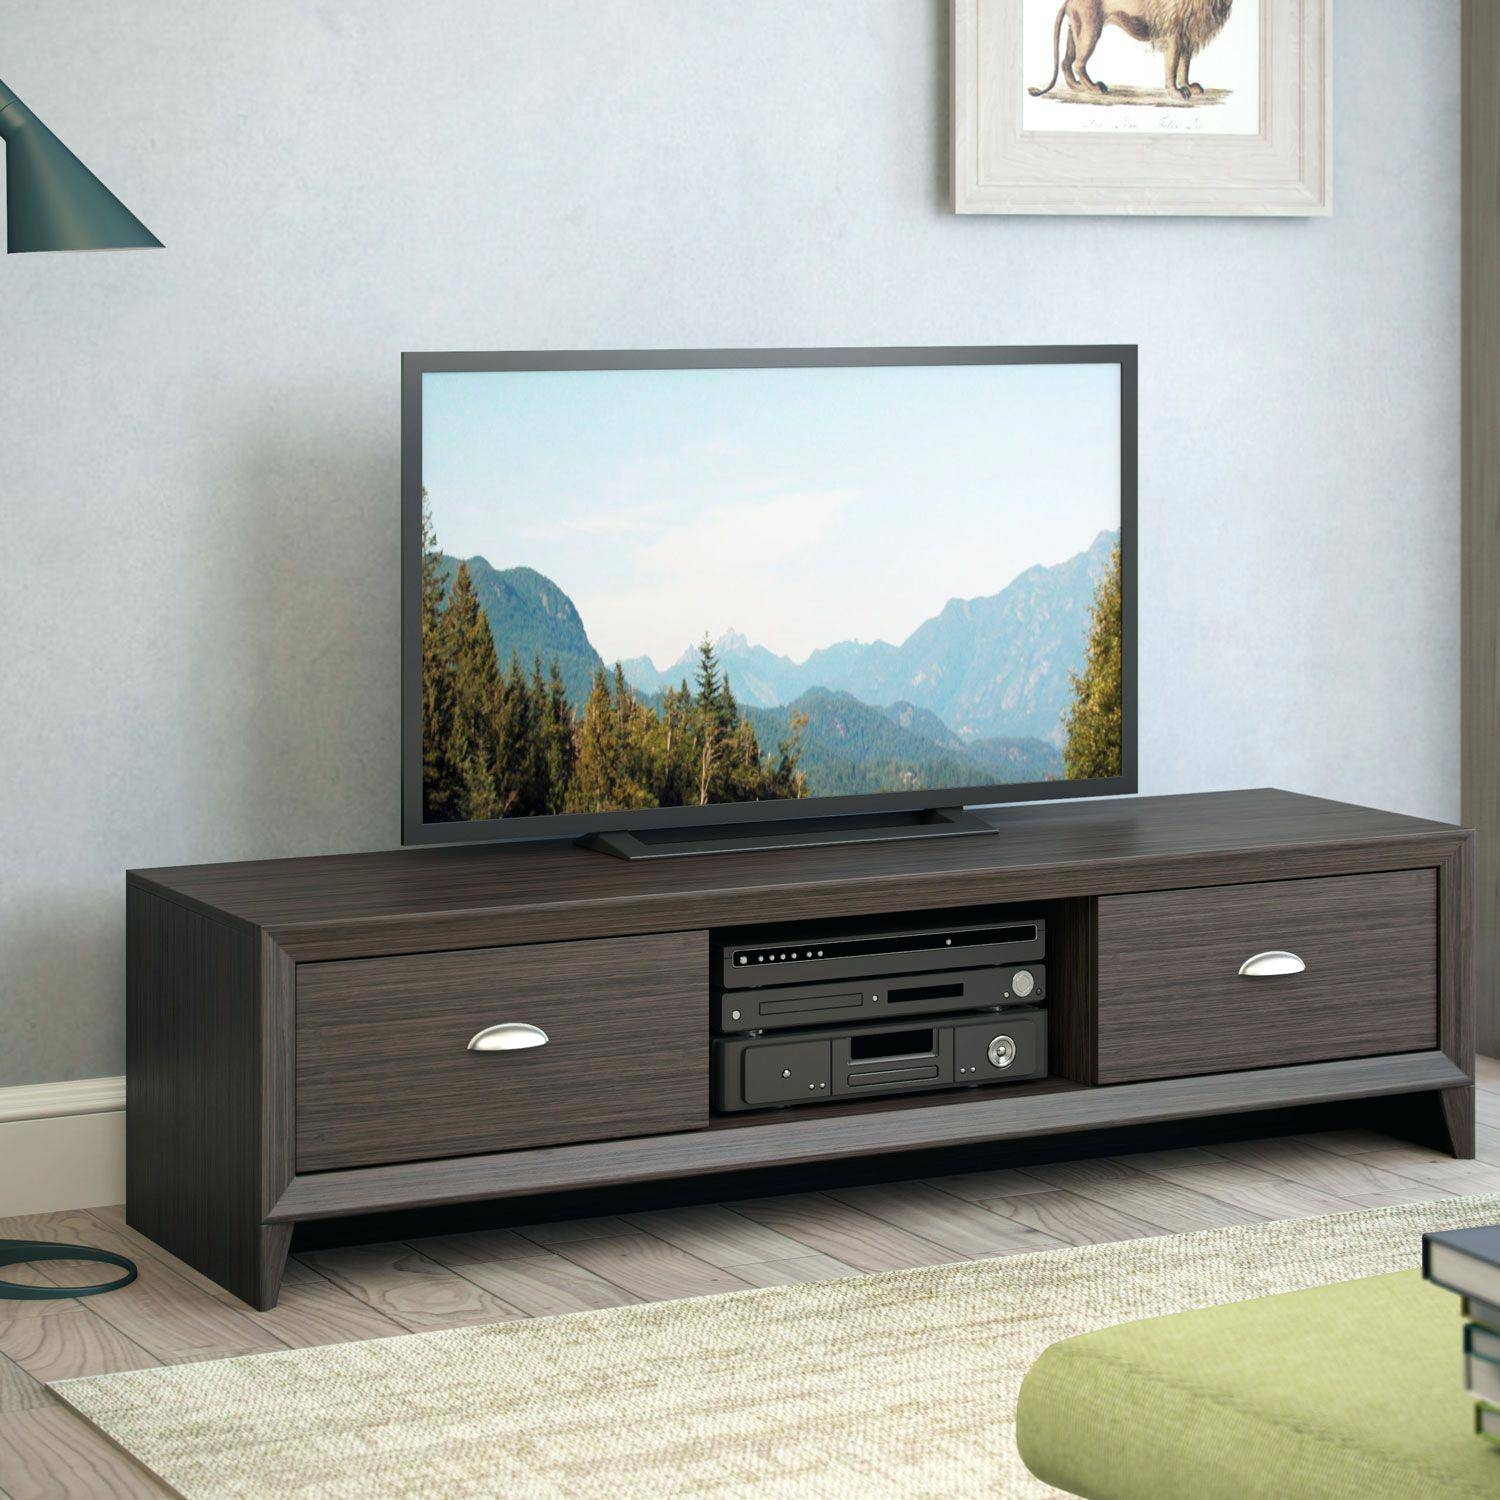 Tv Stand : Superb Tv Stand La Paz In White High Gloss Various in Wenge Tv Cabinets (Image 11 of 15)